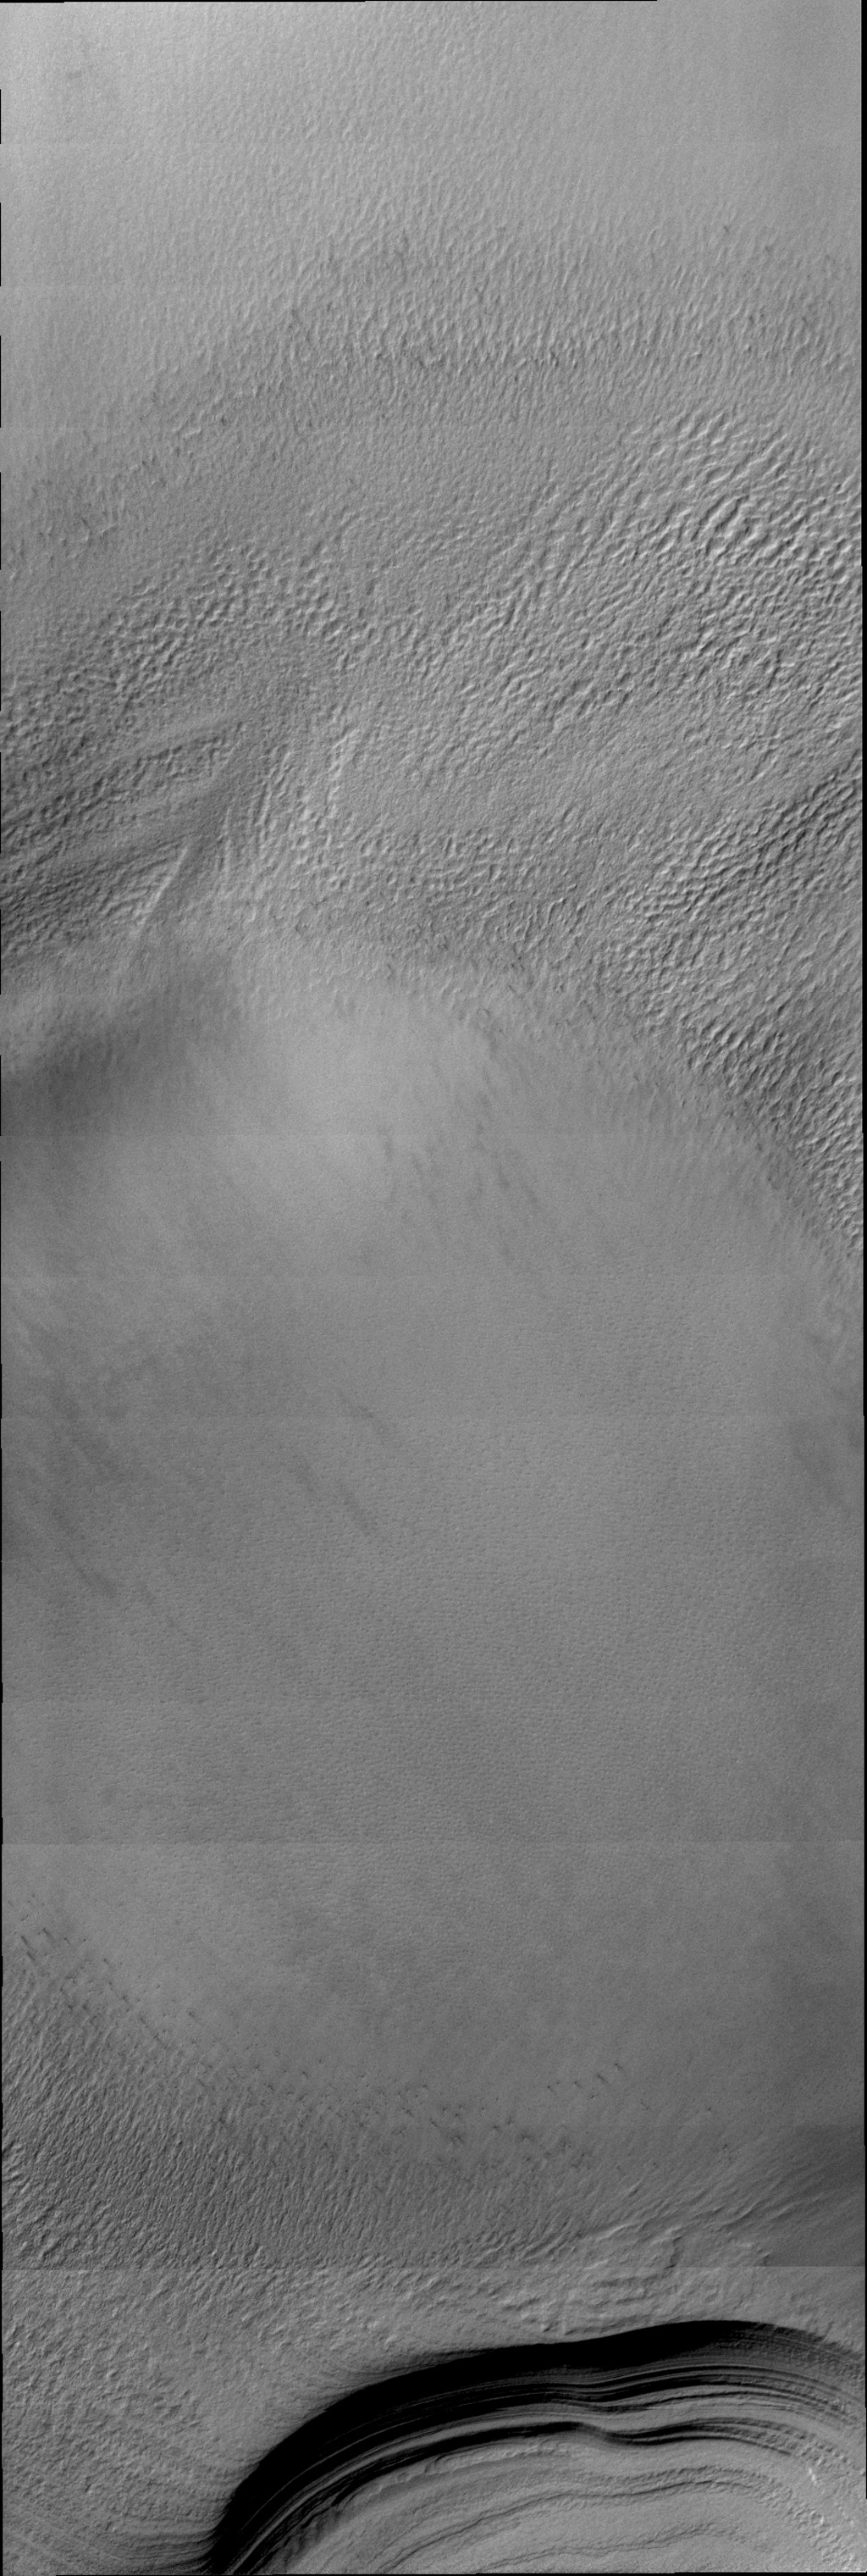 Different lighting can hide or reveal different features on the surface of Mars. The lighting was perfect to reveal the details of the layering of the south polar cap in this image from NASA's 2001 Mars Odyssey.